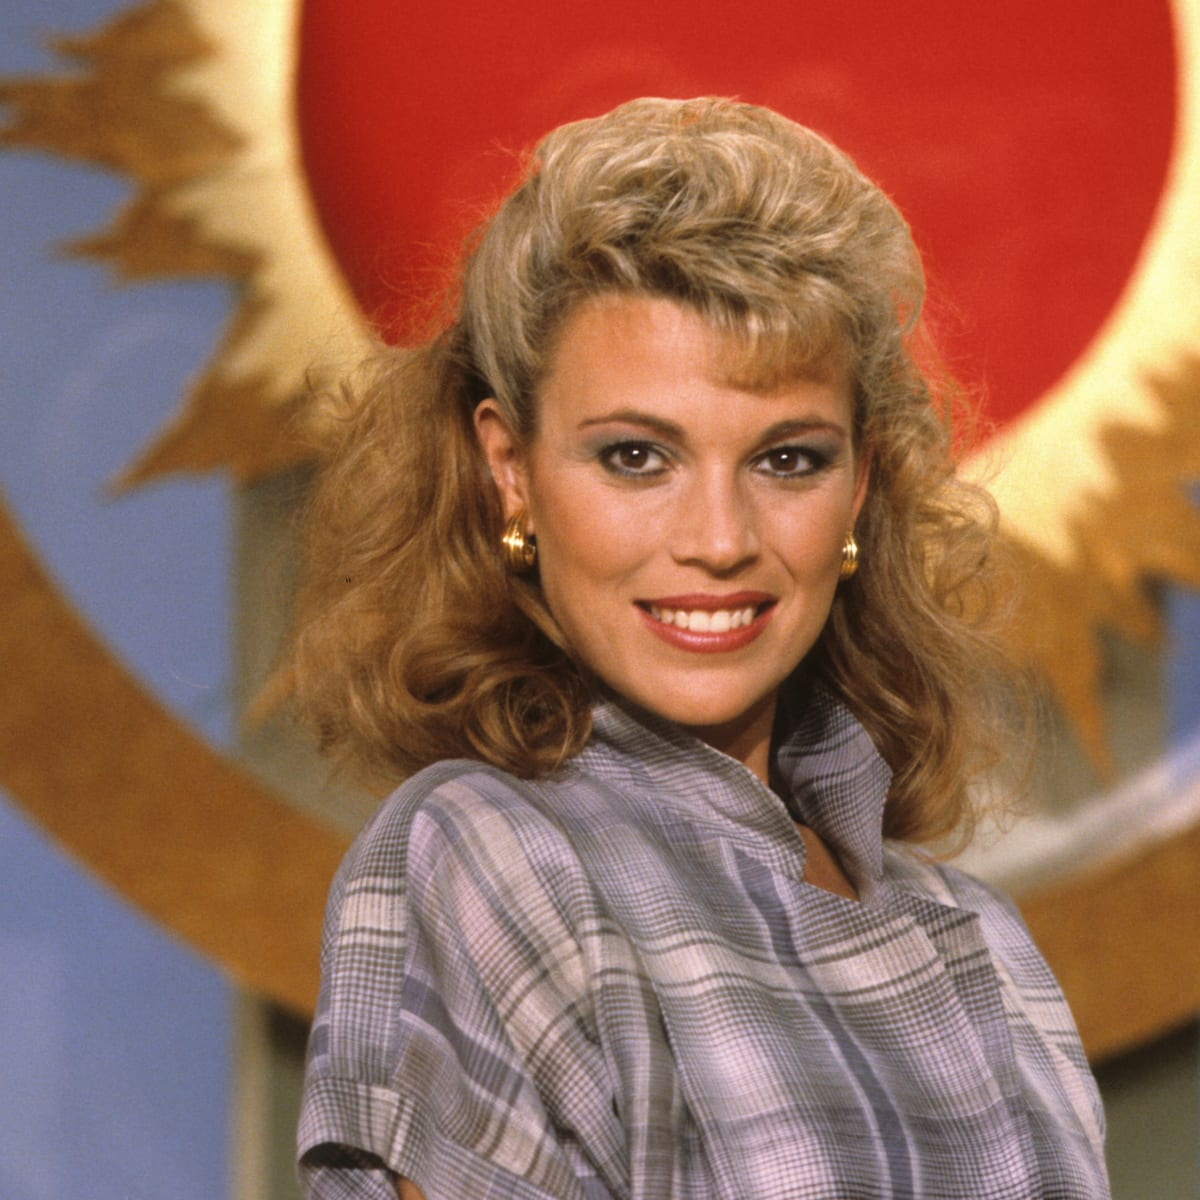 10 Fun Facts About Vanna White Biography